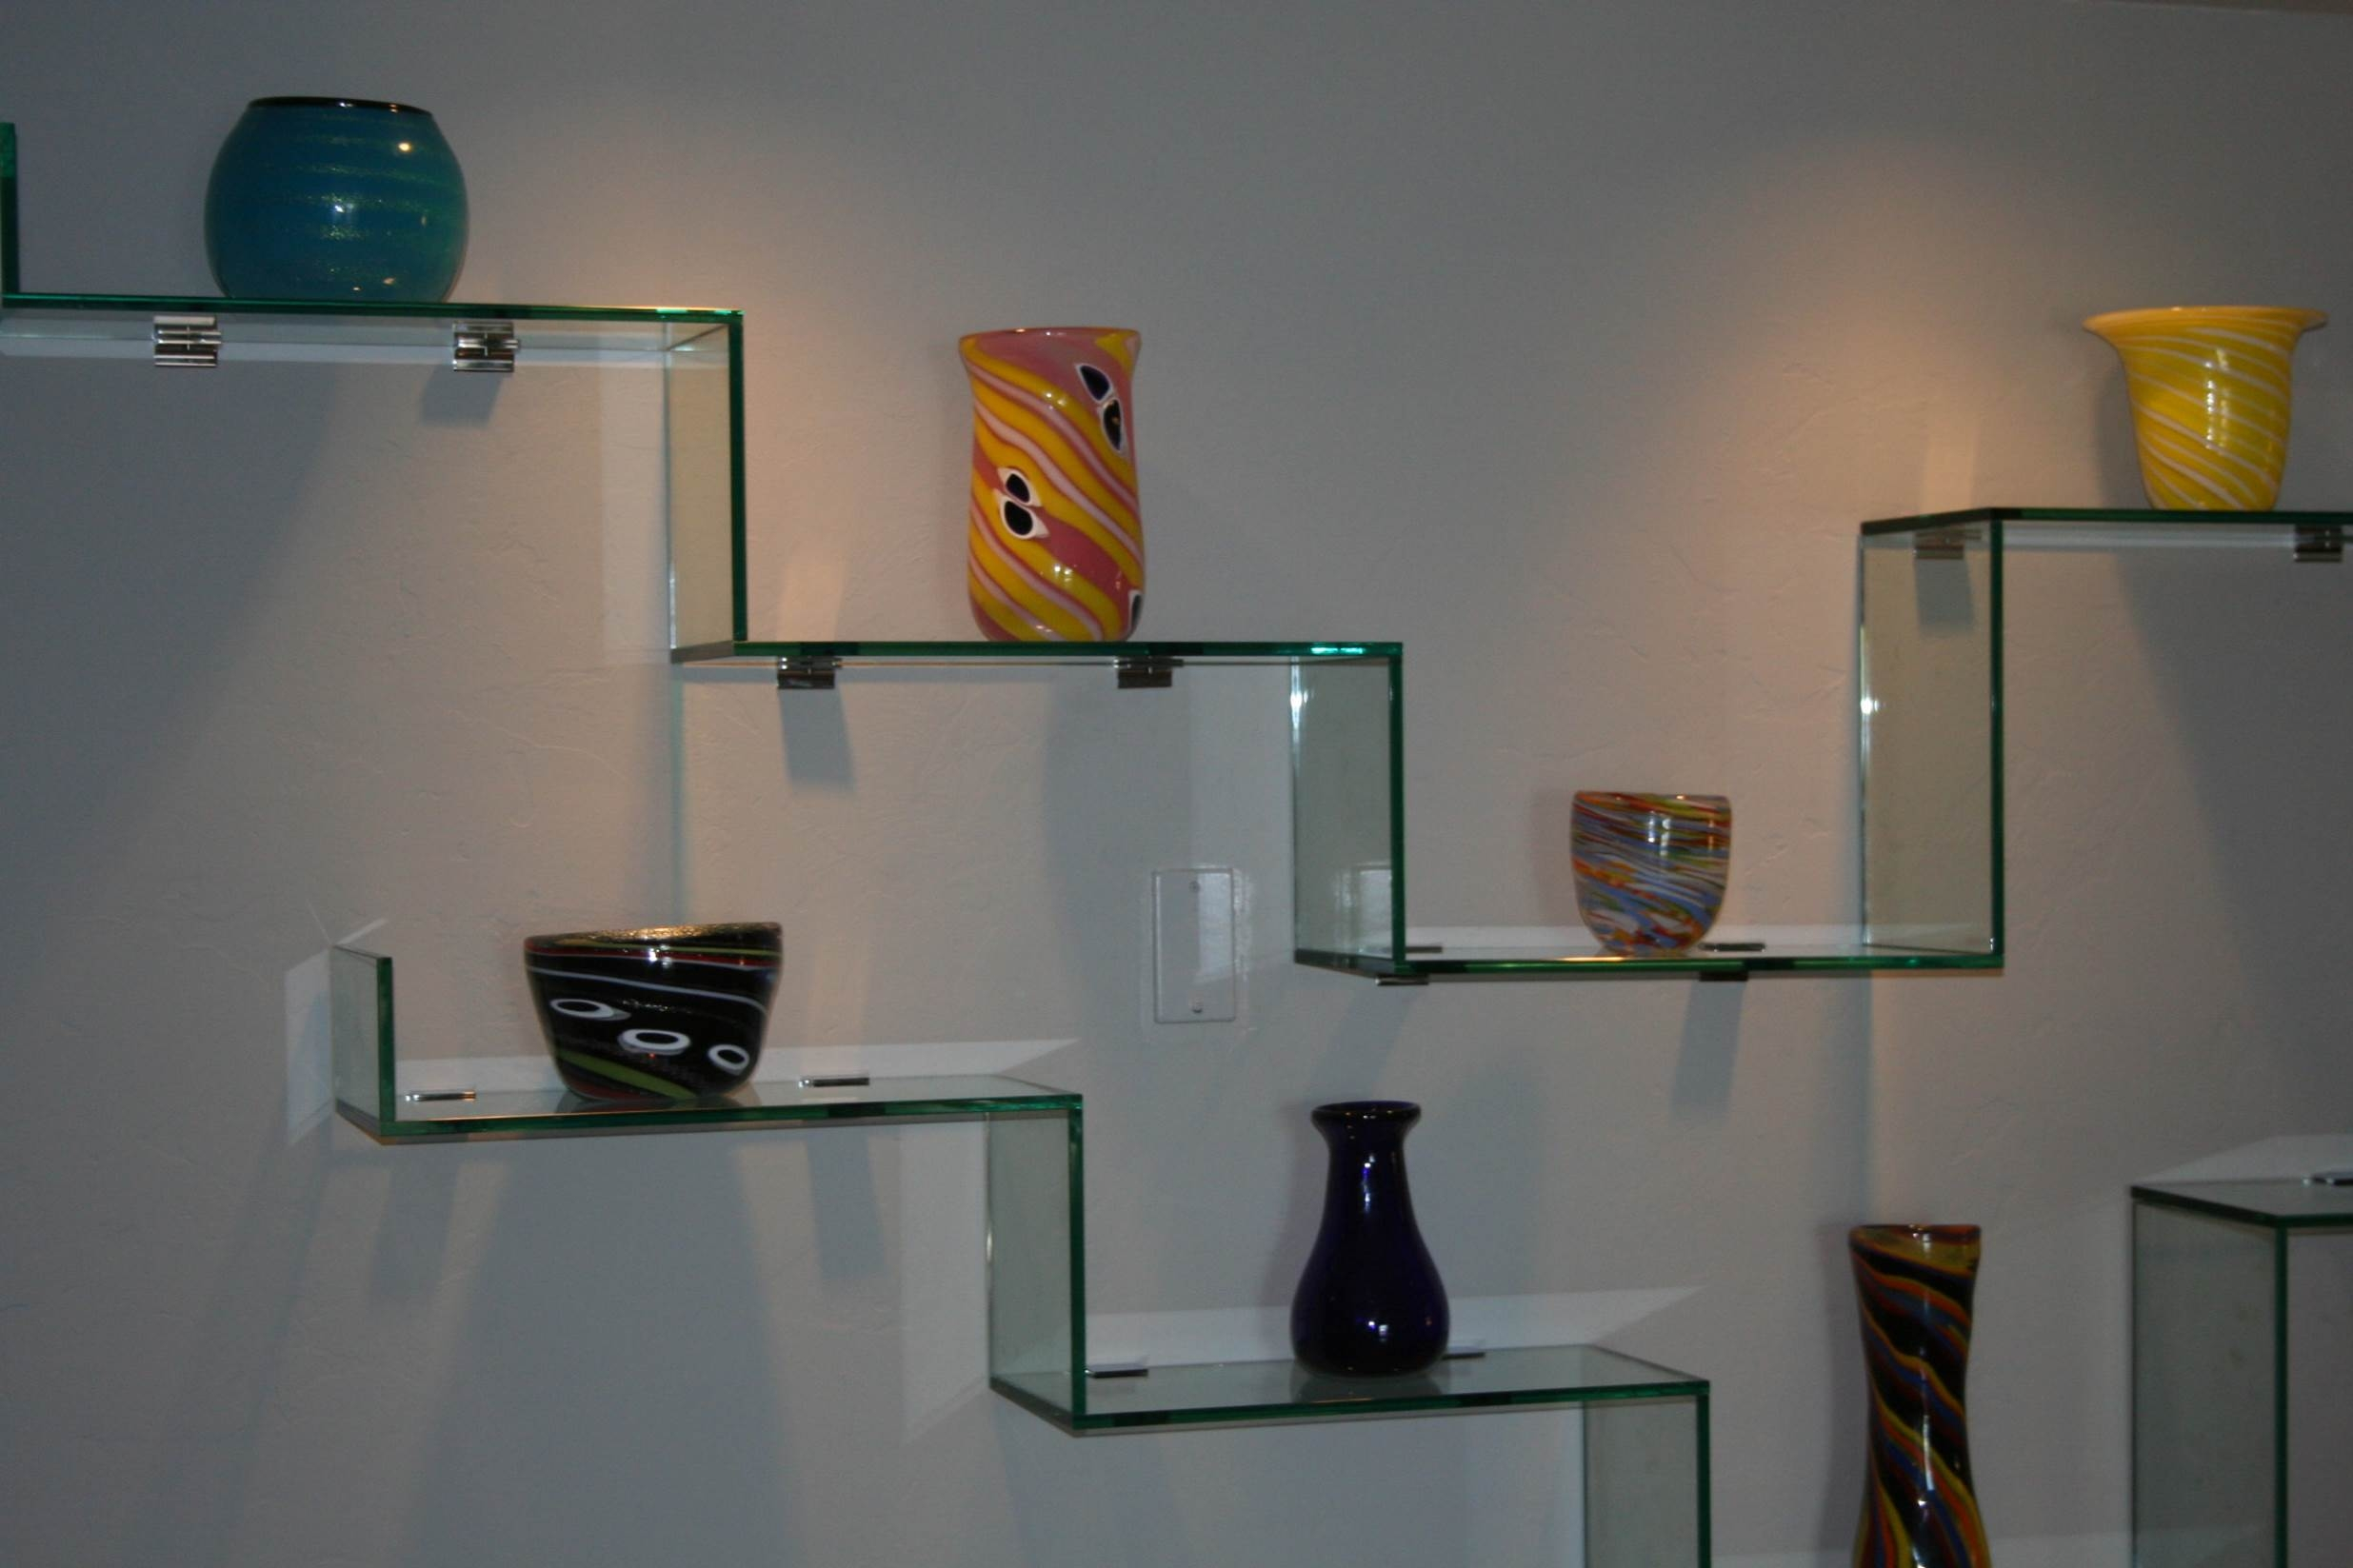 Glass Wall Display Shelf Nucleus Home Intended For Wall Mounted Glass Display Shelves (View 14 of 15)